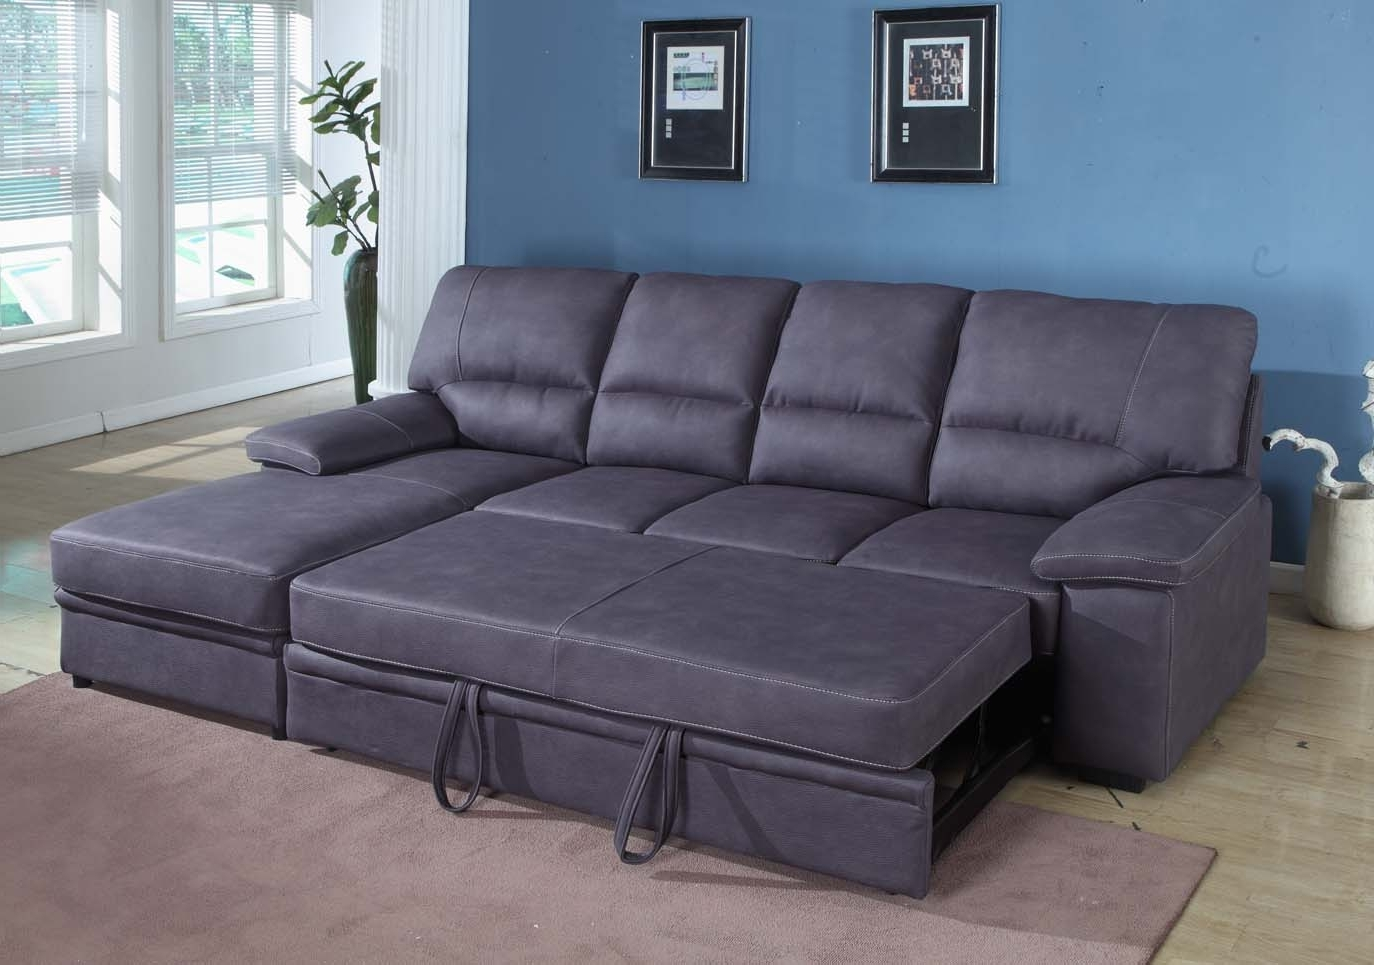 Furniture : Sectional Sofa Nj Best Sectional Sofa Under 500 Regarding Most Recently Released Jacksonville Fl Sectional Sofas (View 15 of 15)